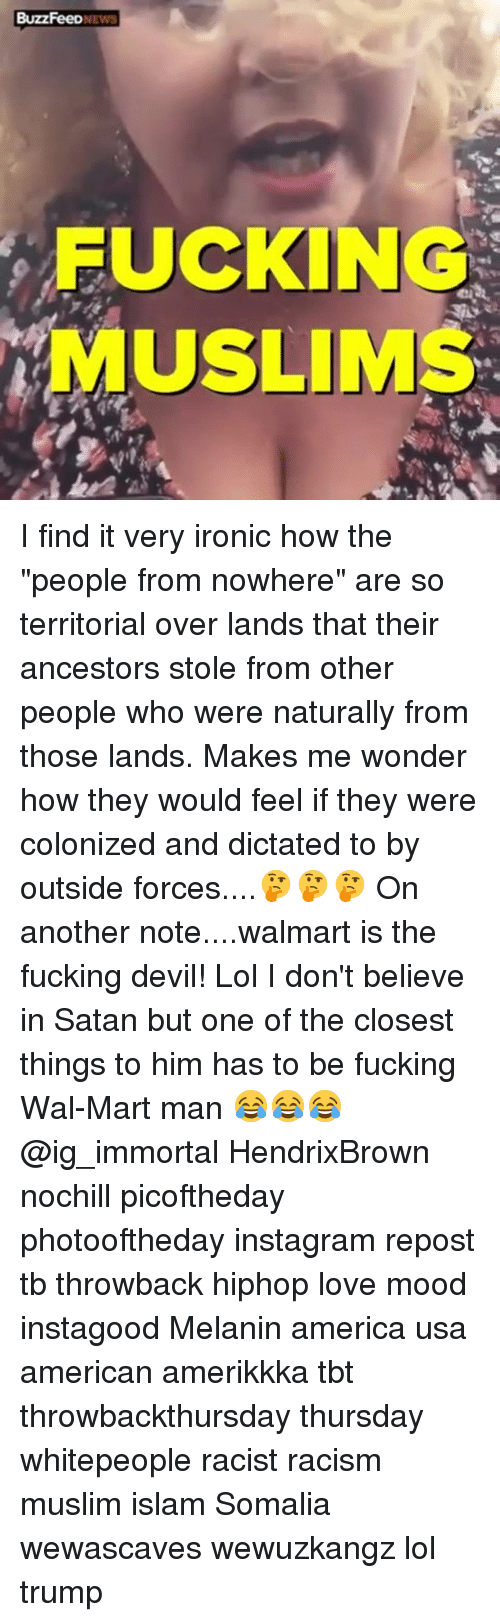 "America, Fucking, and Instagram: BuzzFeeDNEWS  FUCKING  MUSLIMS I find it very ironic how the ""people from nowhere"" are so territorial over lands that their ancestors stole from other people who were naturally from those lands. Makes me wonder how they would feel if they were colonized and dictated to by outside forces....🤔🤔🤔 On another note....walmart is the fucking devil! Lol I don't believe in Satan but one of the closest things to him has to be fucking Wal-Mart man 😂😂😂 @ig_immortal HendrixBrown nochill picoftheday photooftheday instagram repost tb throwback hiphop love mood instagood Melanin america usa american amerikkka tbt throwbackthursday thursday whitepeople racist racism muslim islam Somalia wewascaves wewuzkangz lol trump"